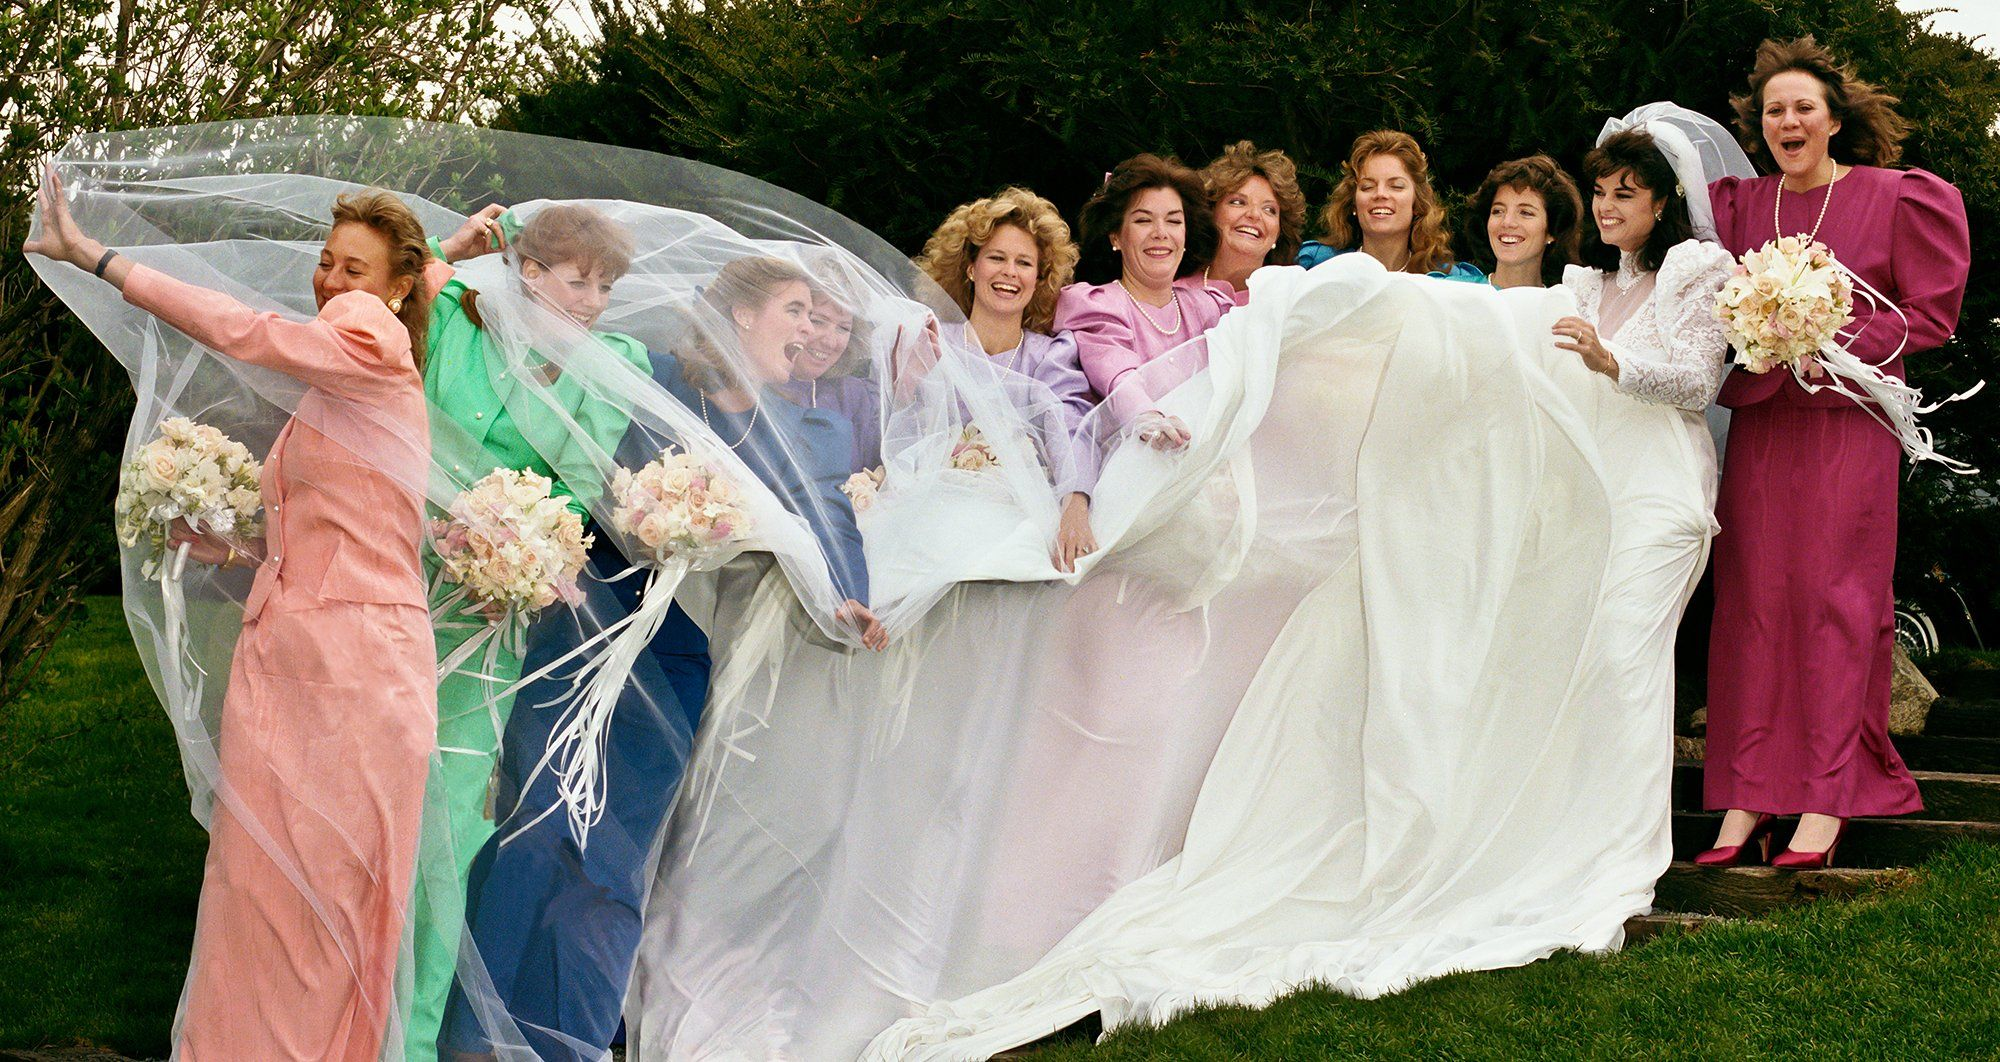 the kennedy family wedding photographer shares his most